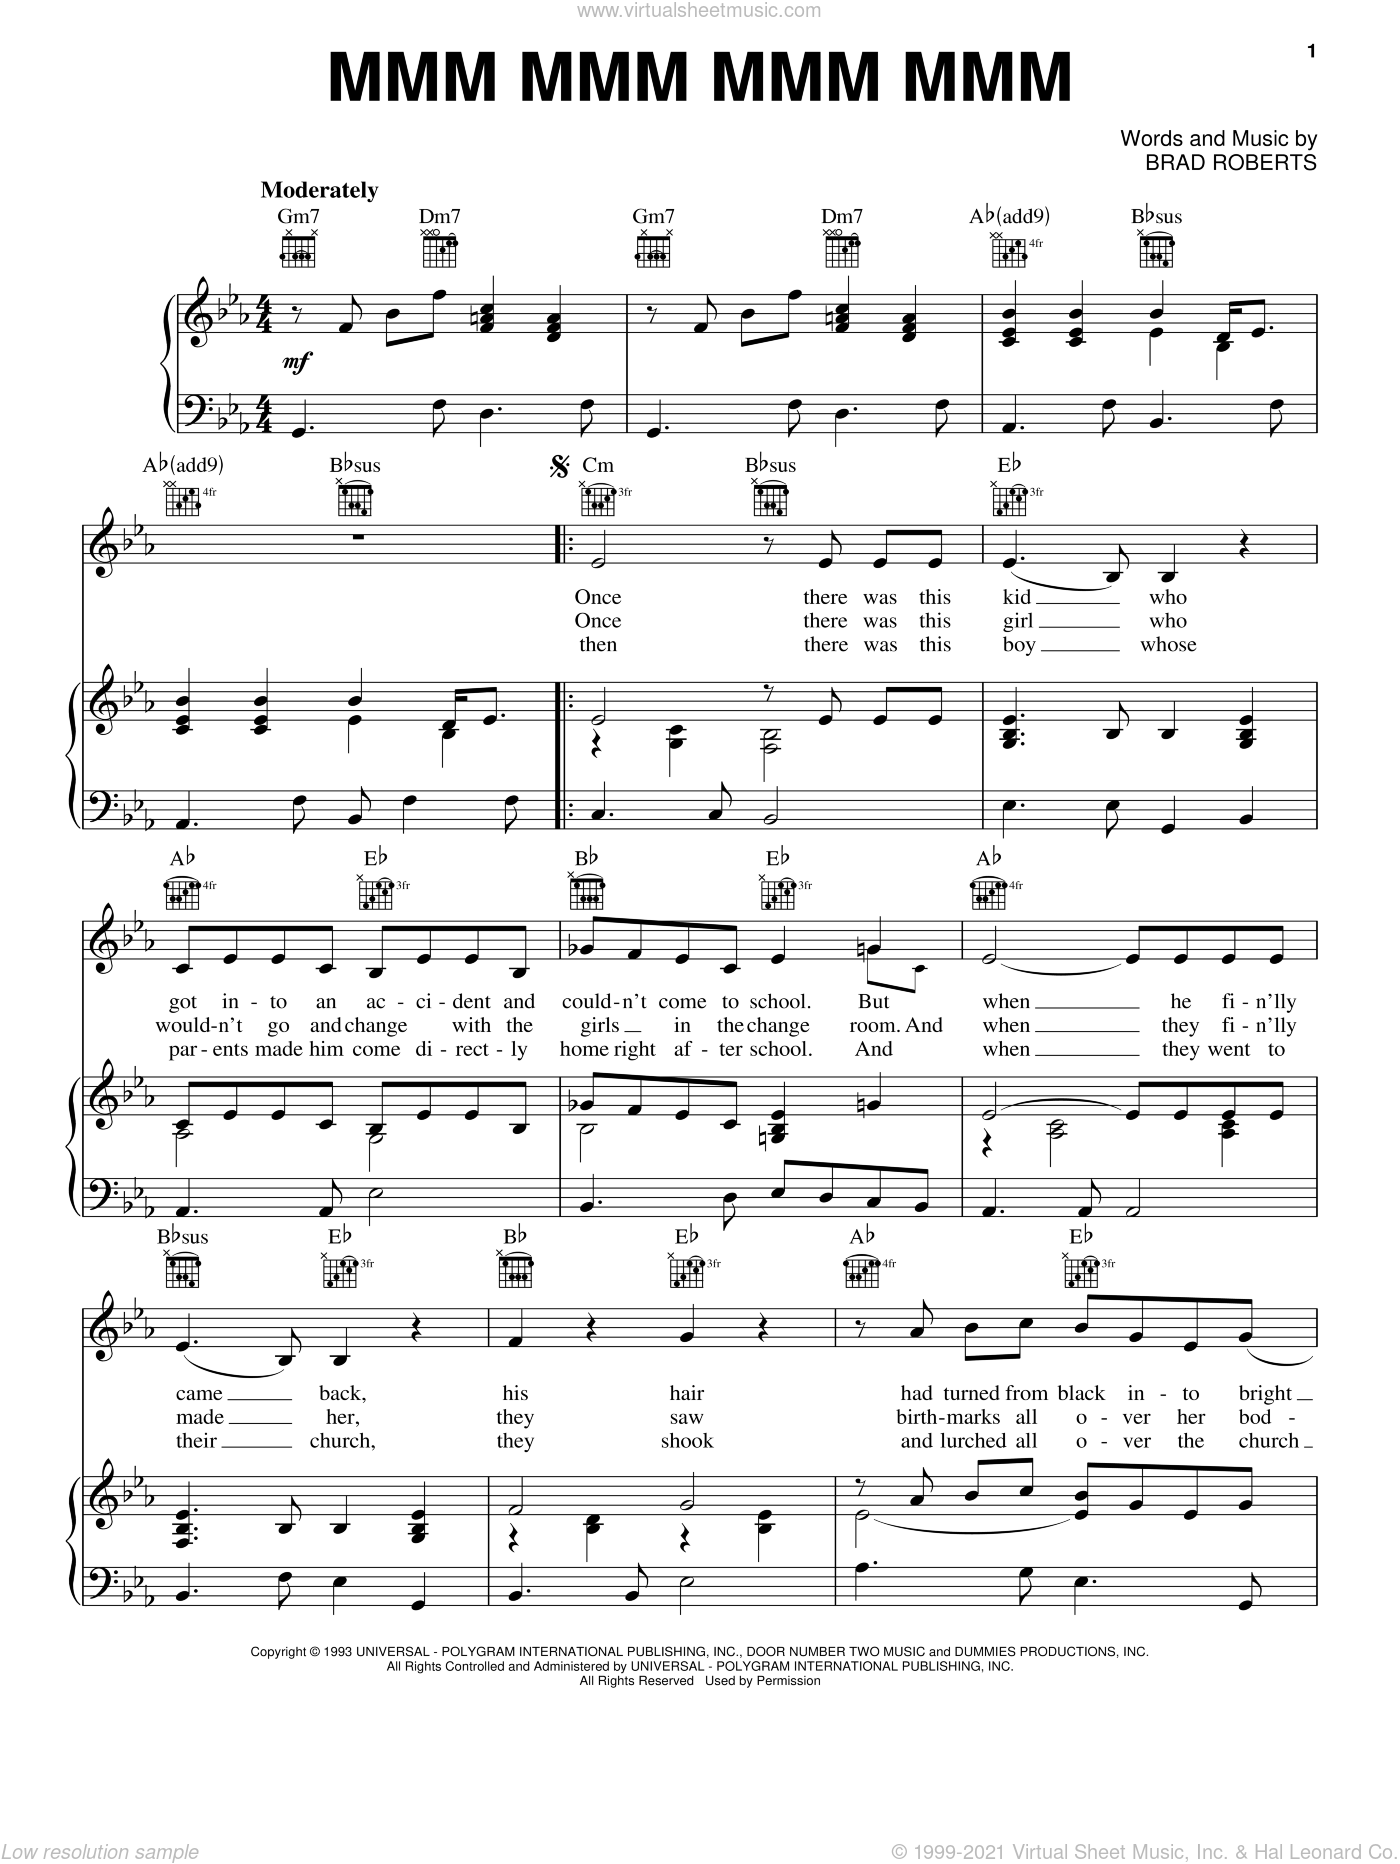 Mmm Mmm Mmm Mmm sheet music for voice, piano or guitar by Brad Roberts. Score Image Preview.